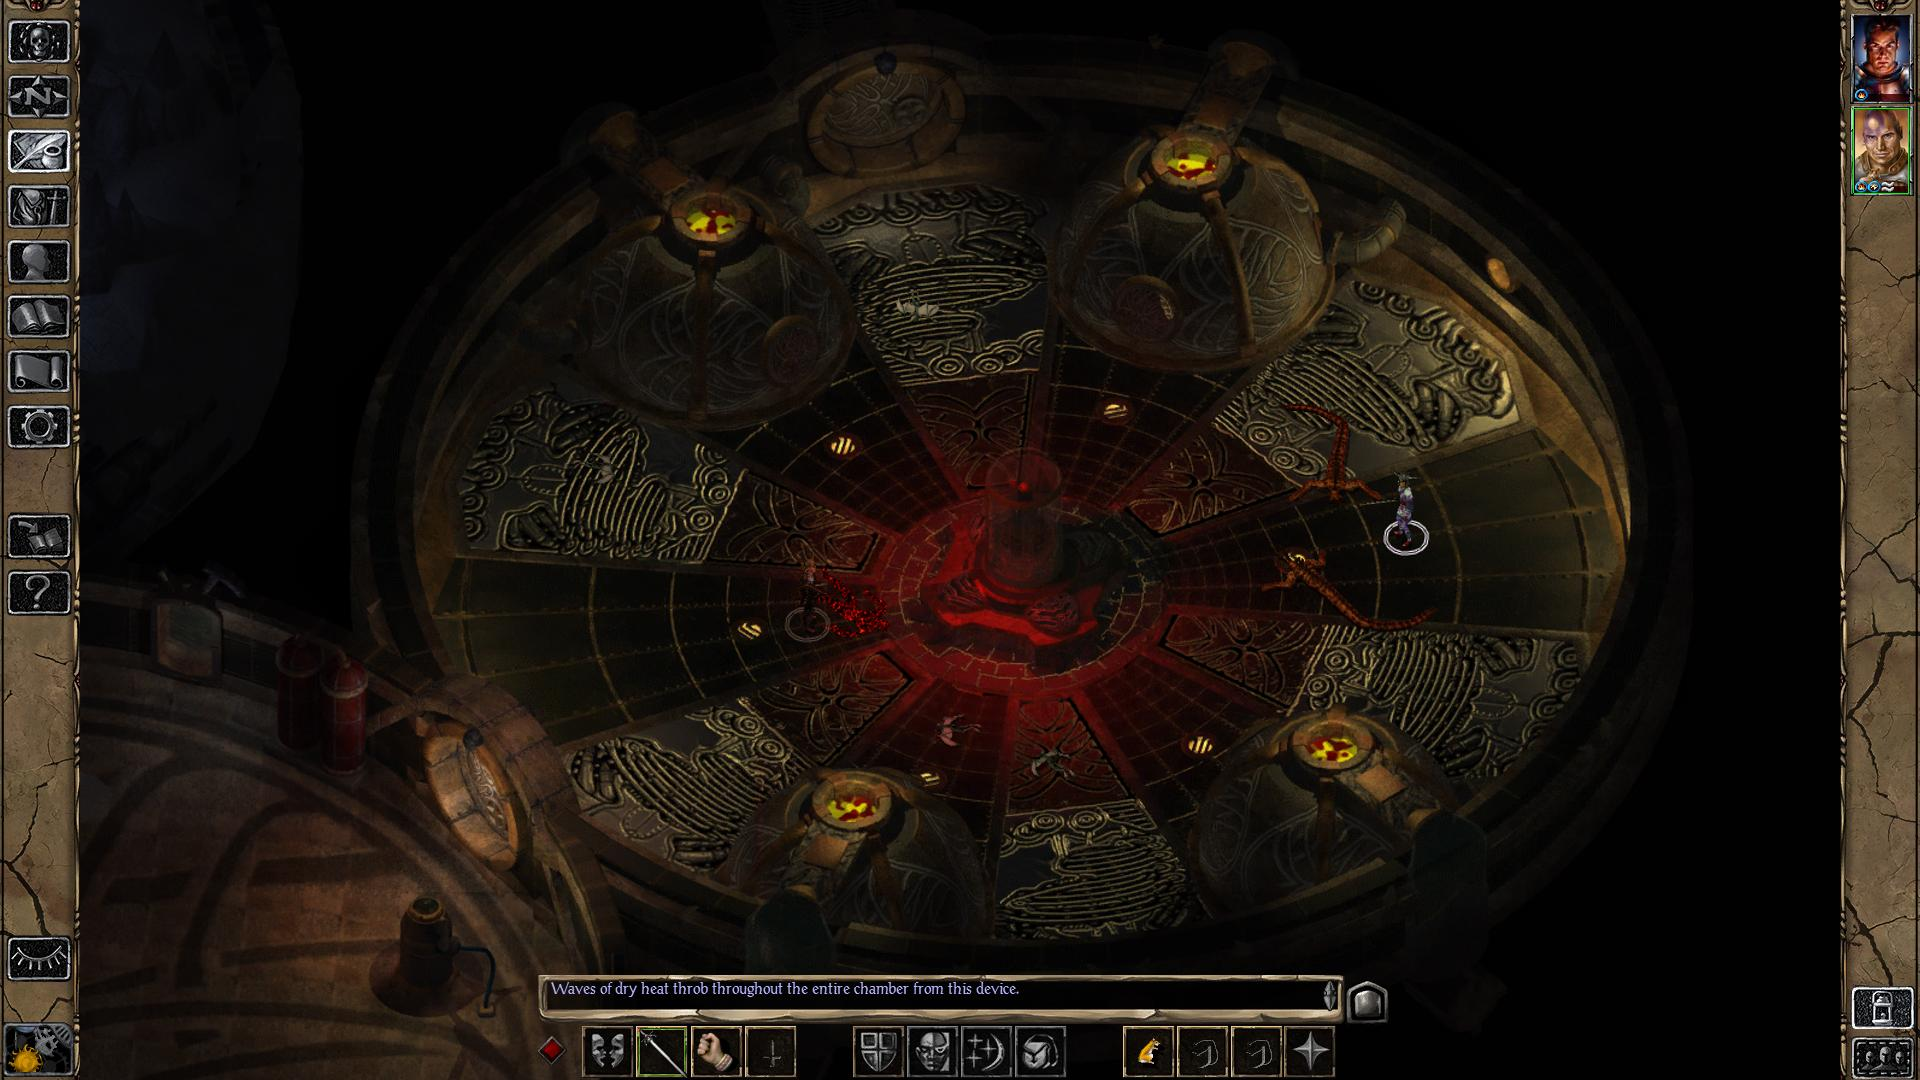 Baldur's Gate 2: Enhanced Edition PC and Mac Release Date Confirmed, First Gameplay Trailer Now Available #28626